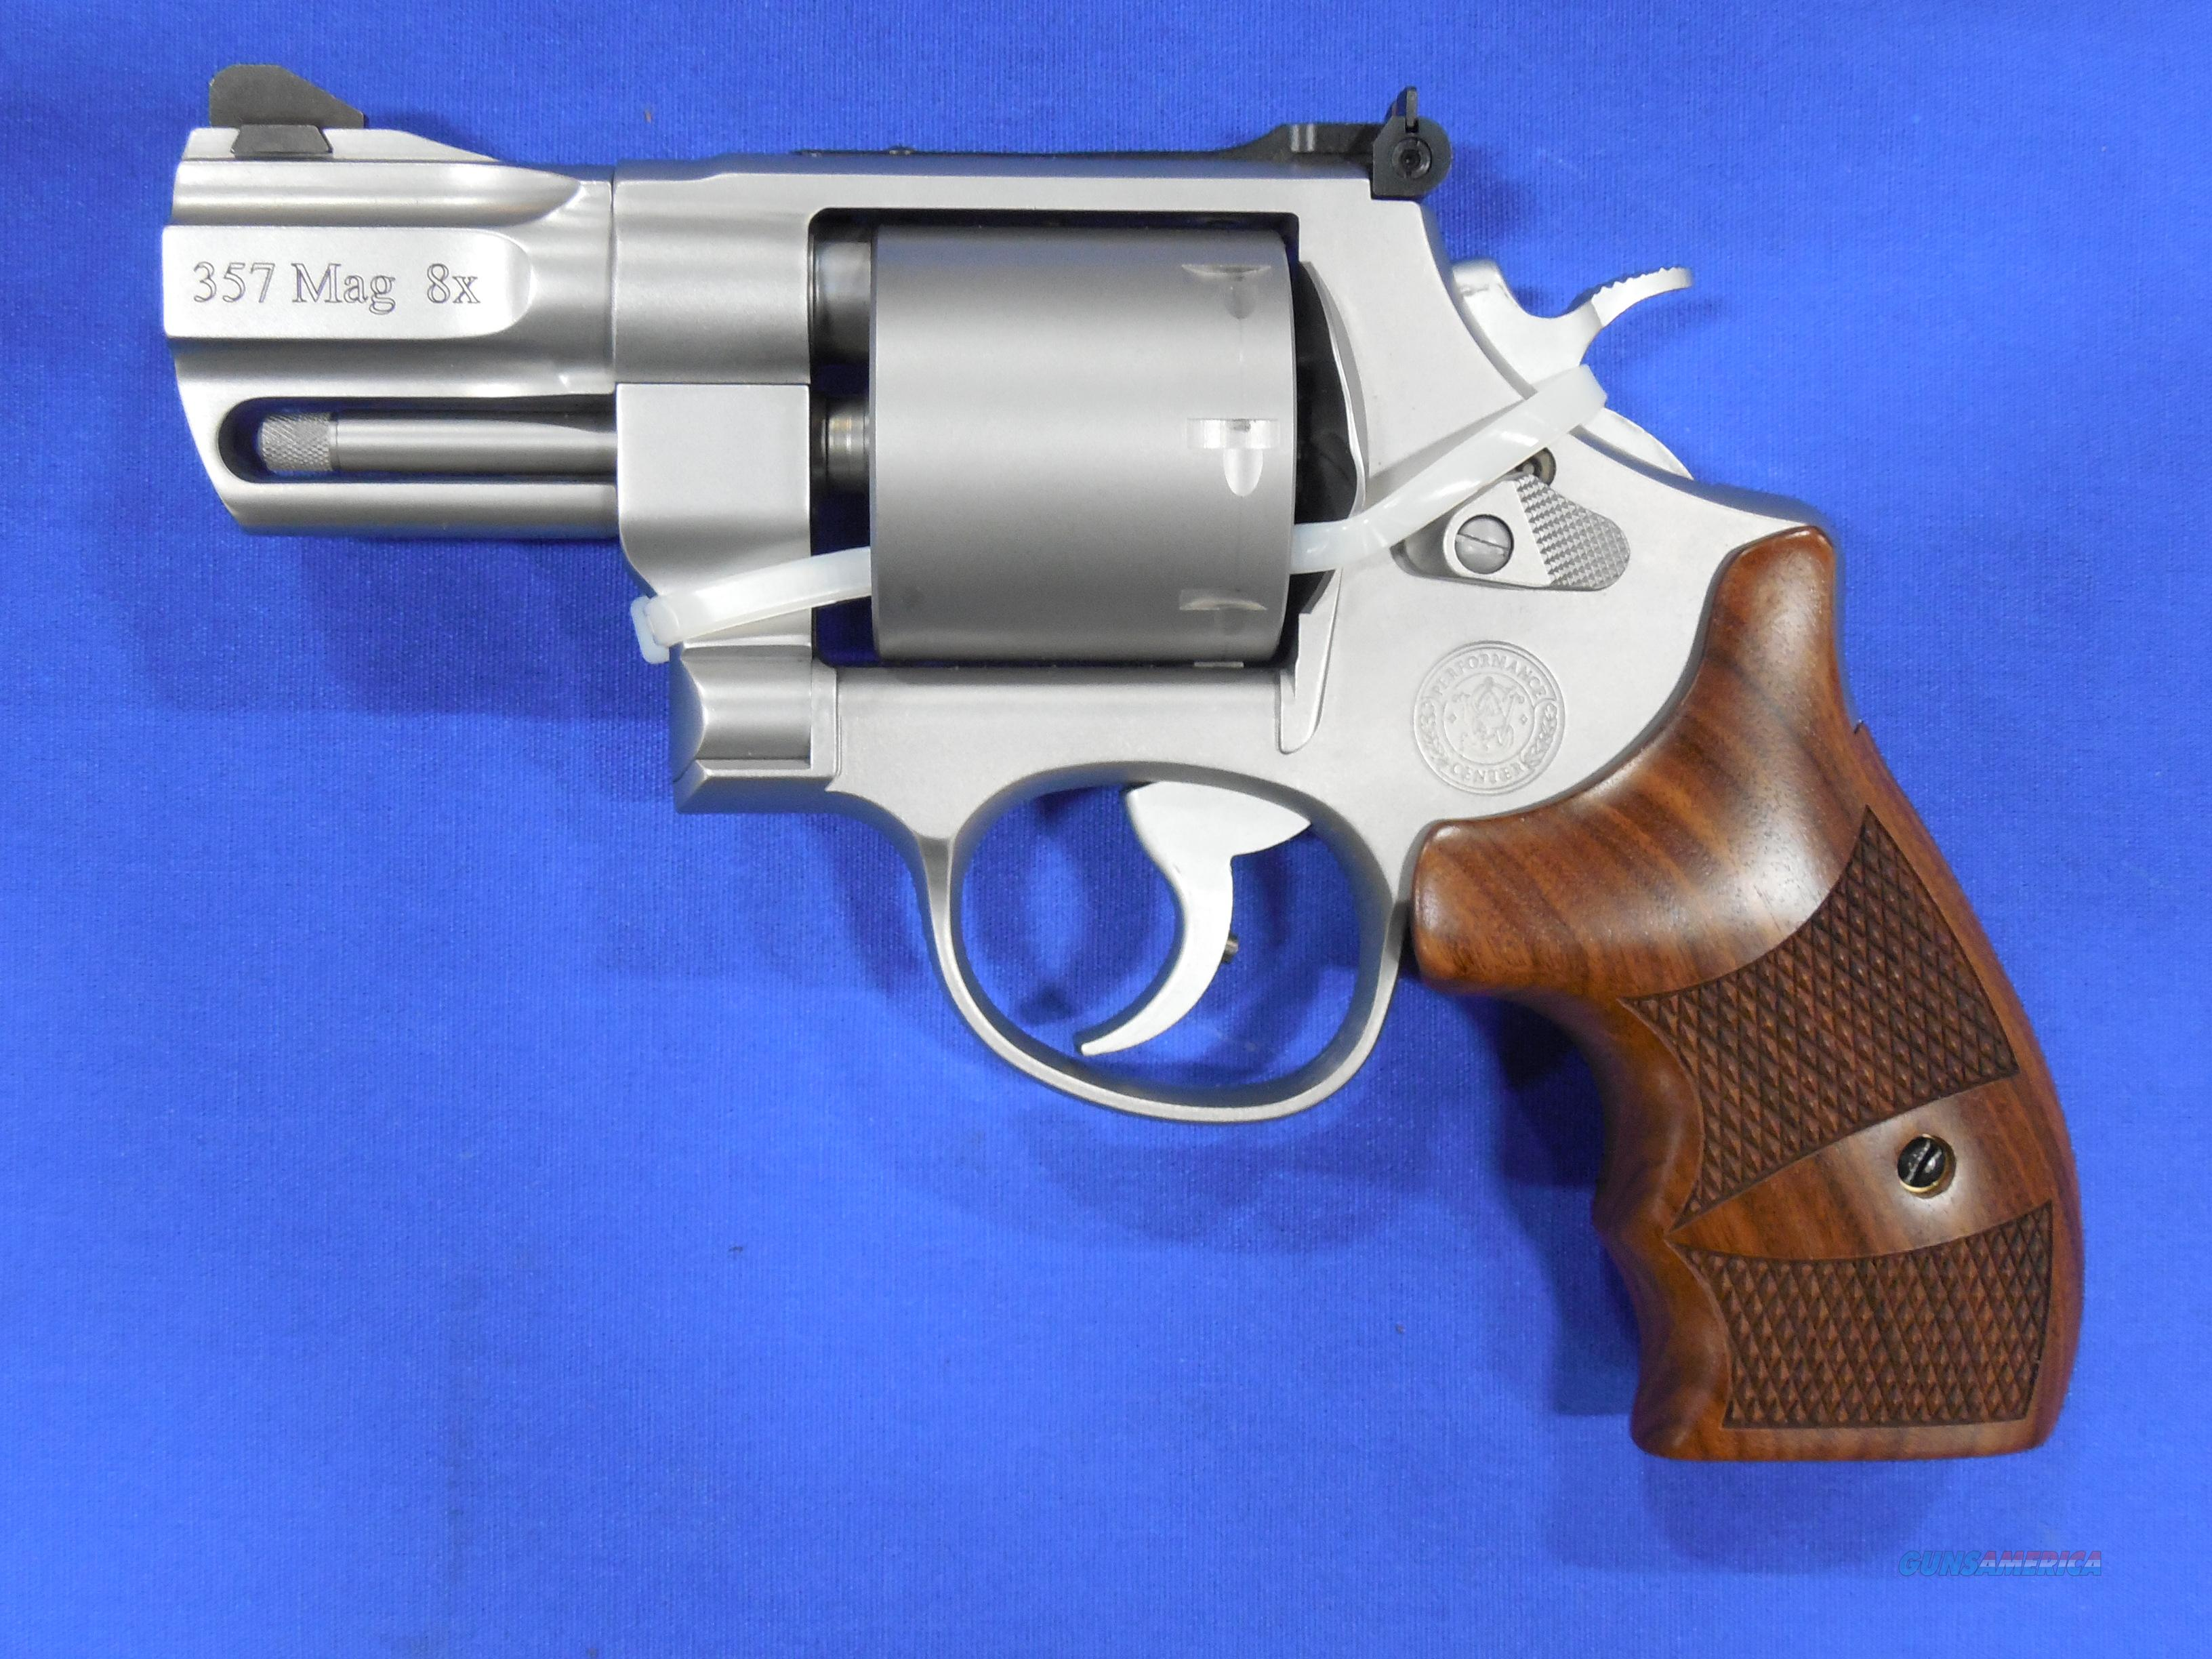 Guns gt pistols gt smith amp wesson revolvers gt performance center